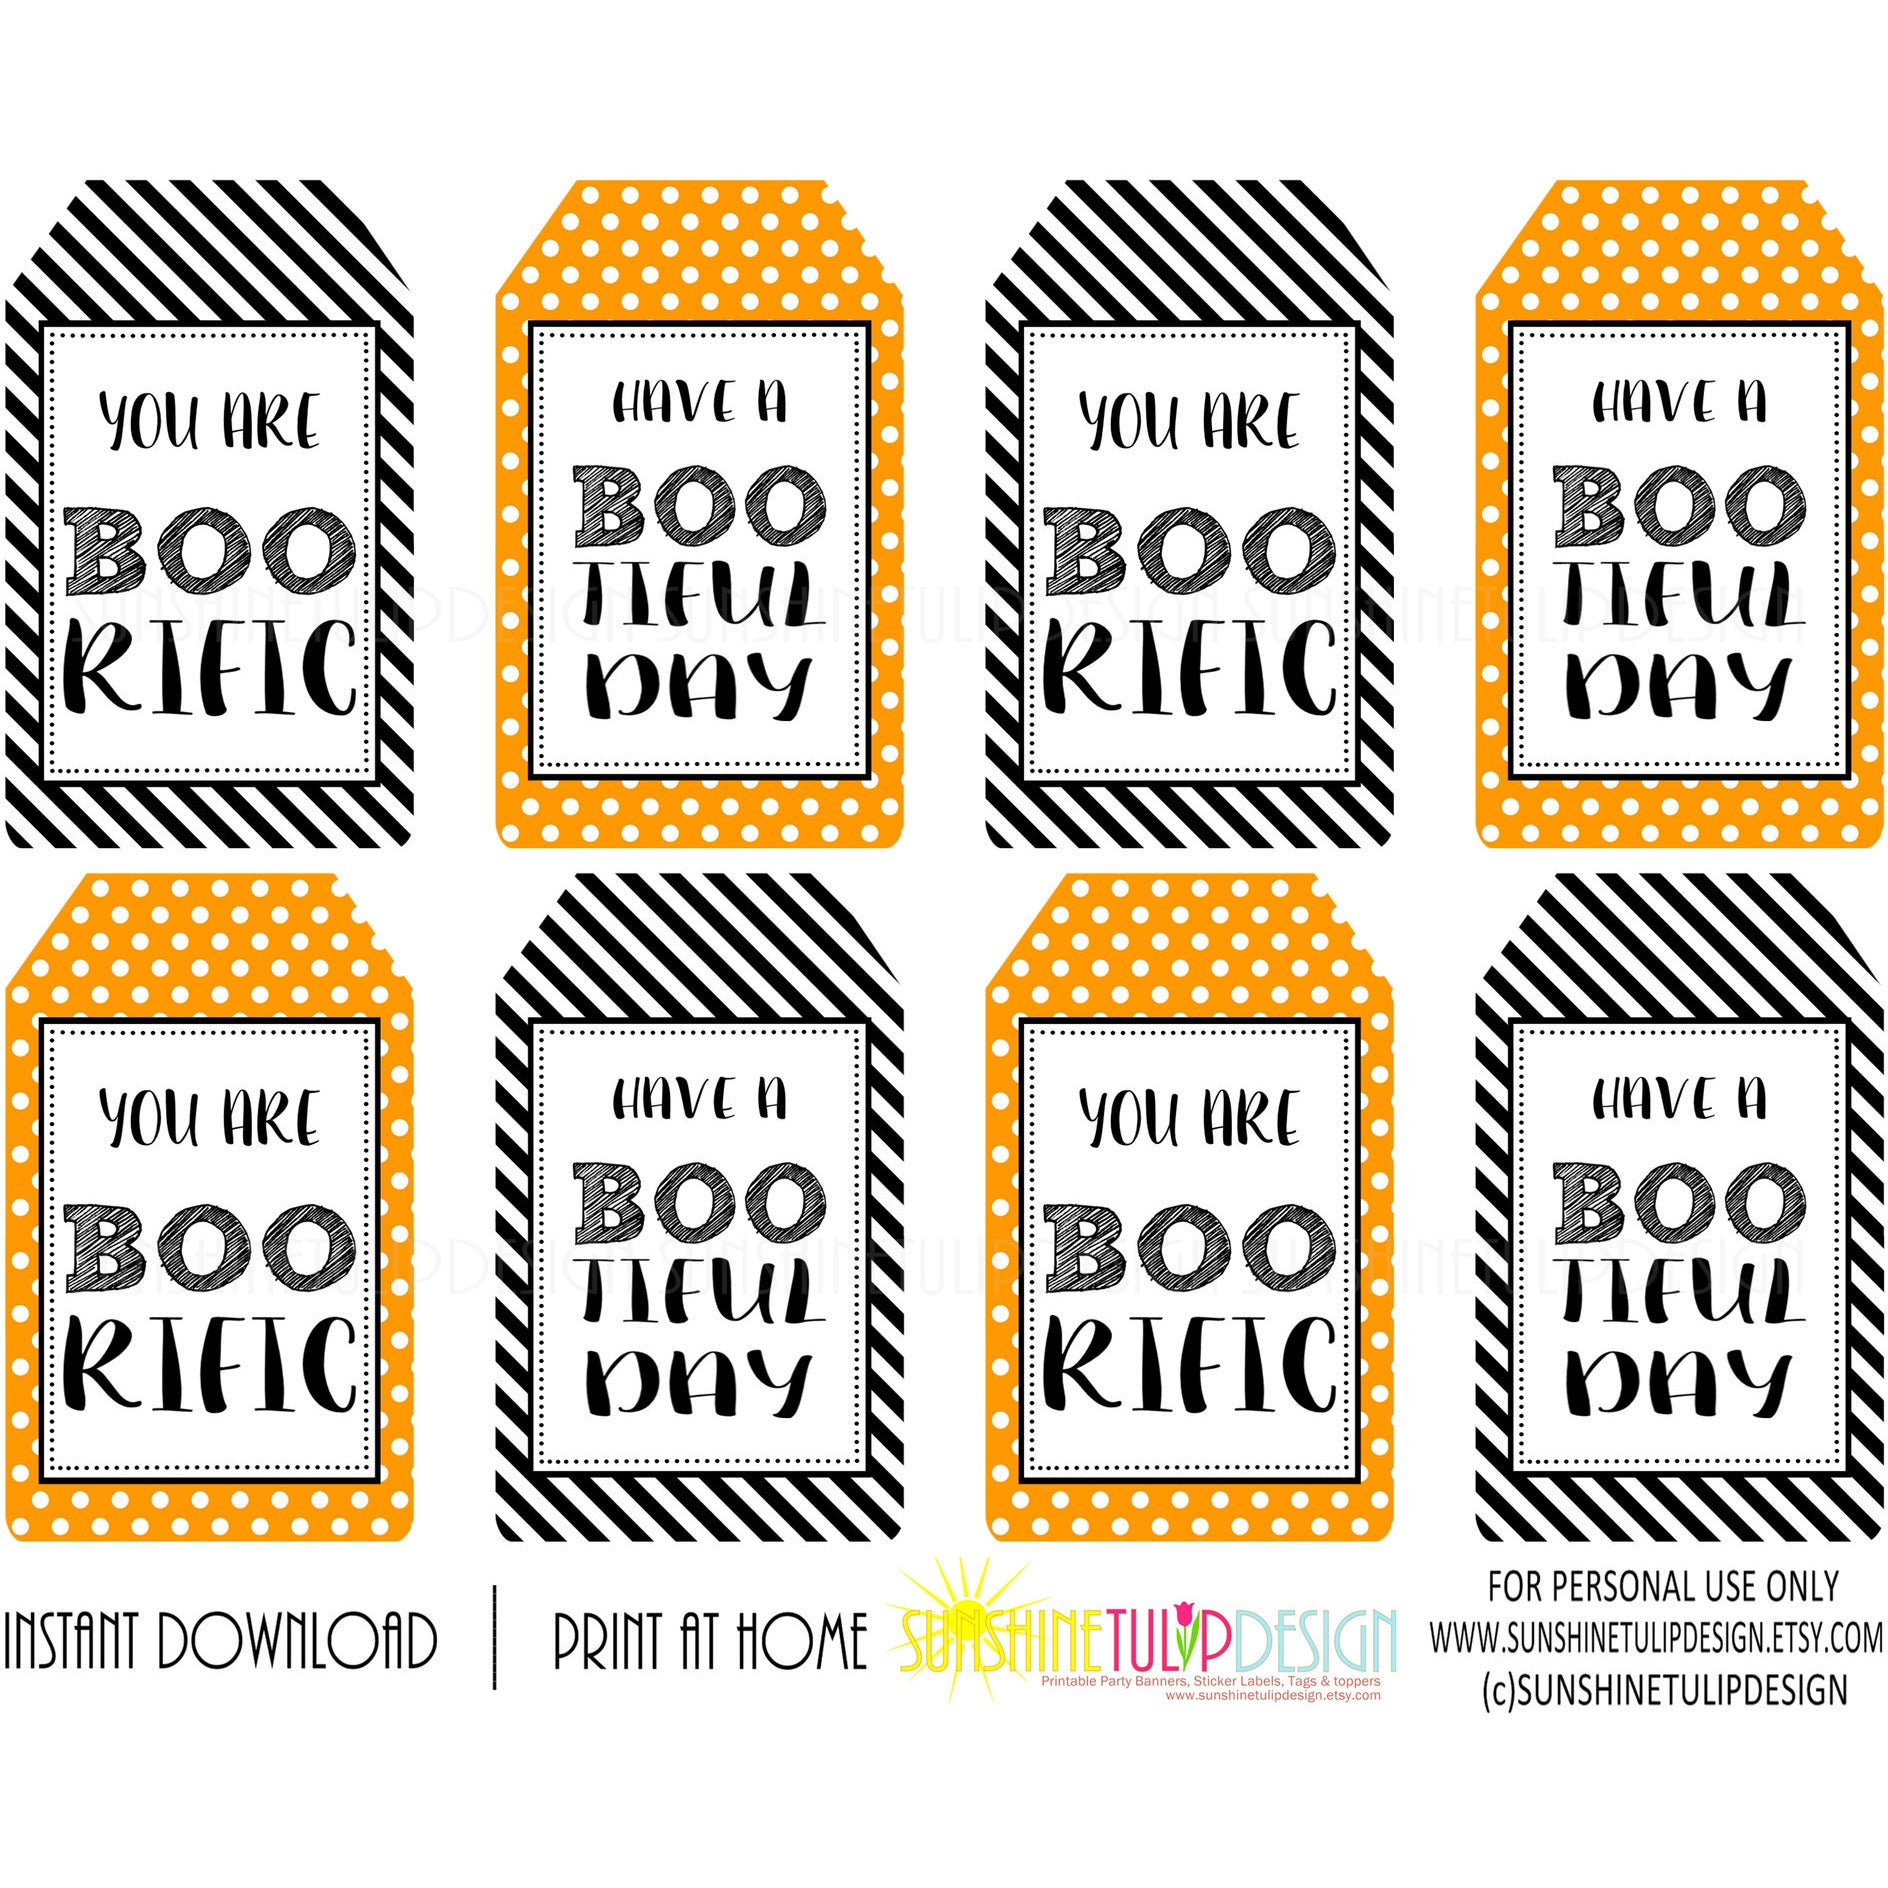 photo relating to Printable Halloween Tags titled Printable Halloween Reward Tags, Halloween BOOrific BOOtiful Working day Prefer Present Tags through Sunshinetulipdesign